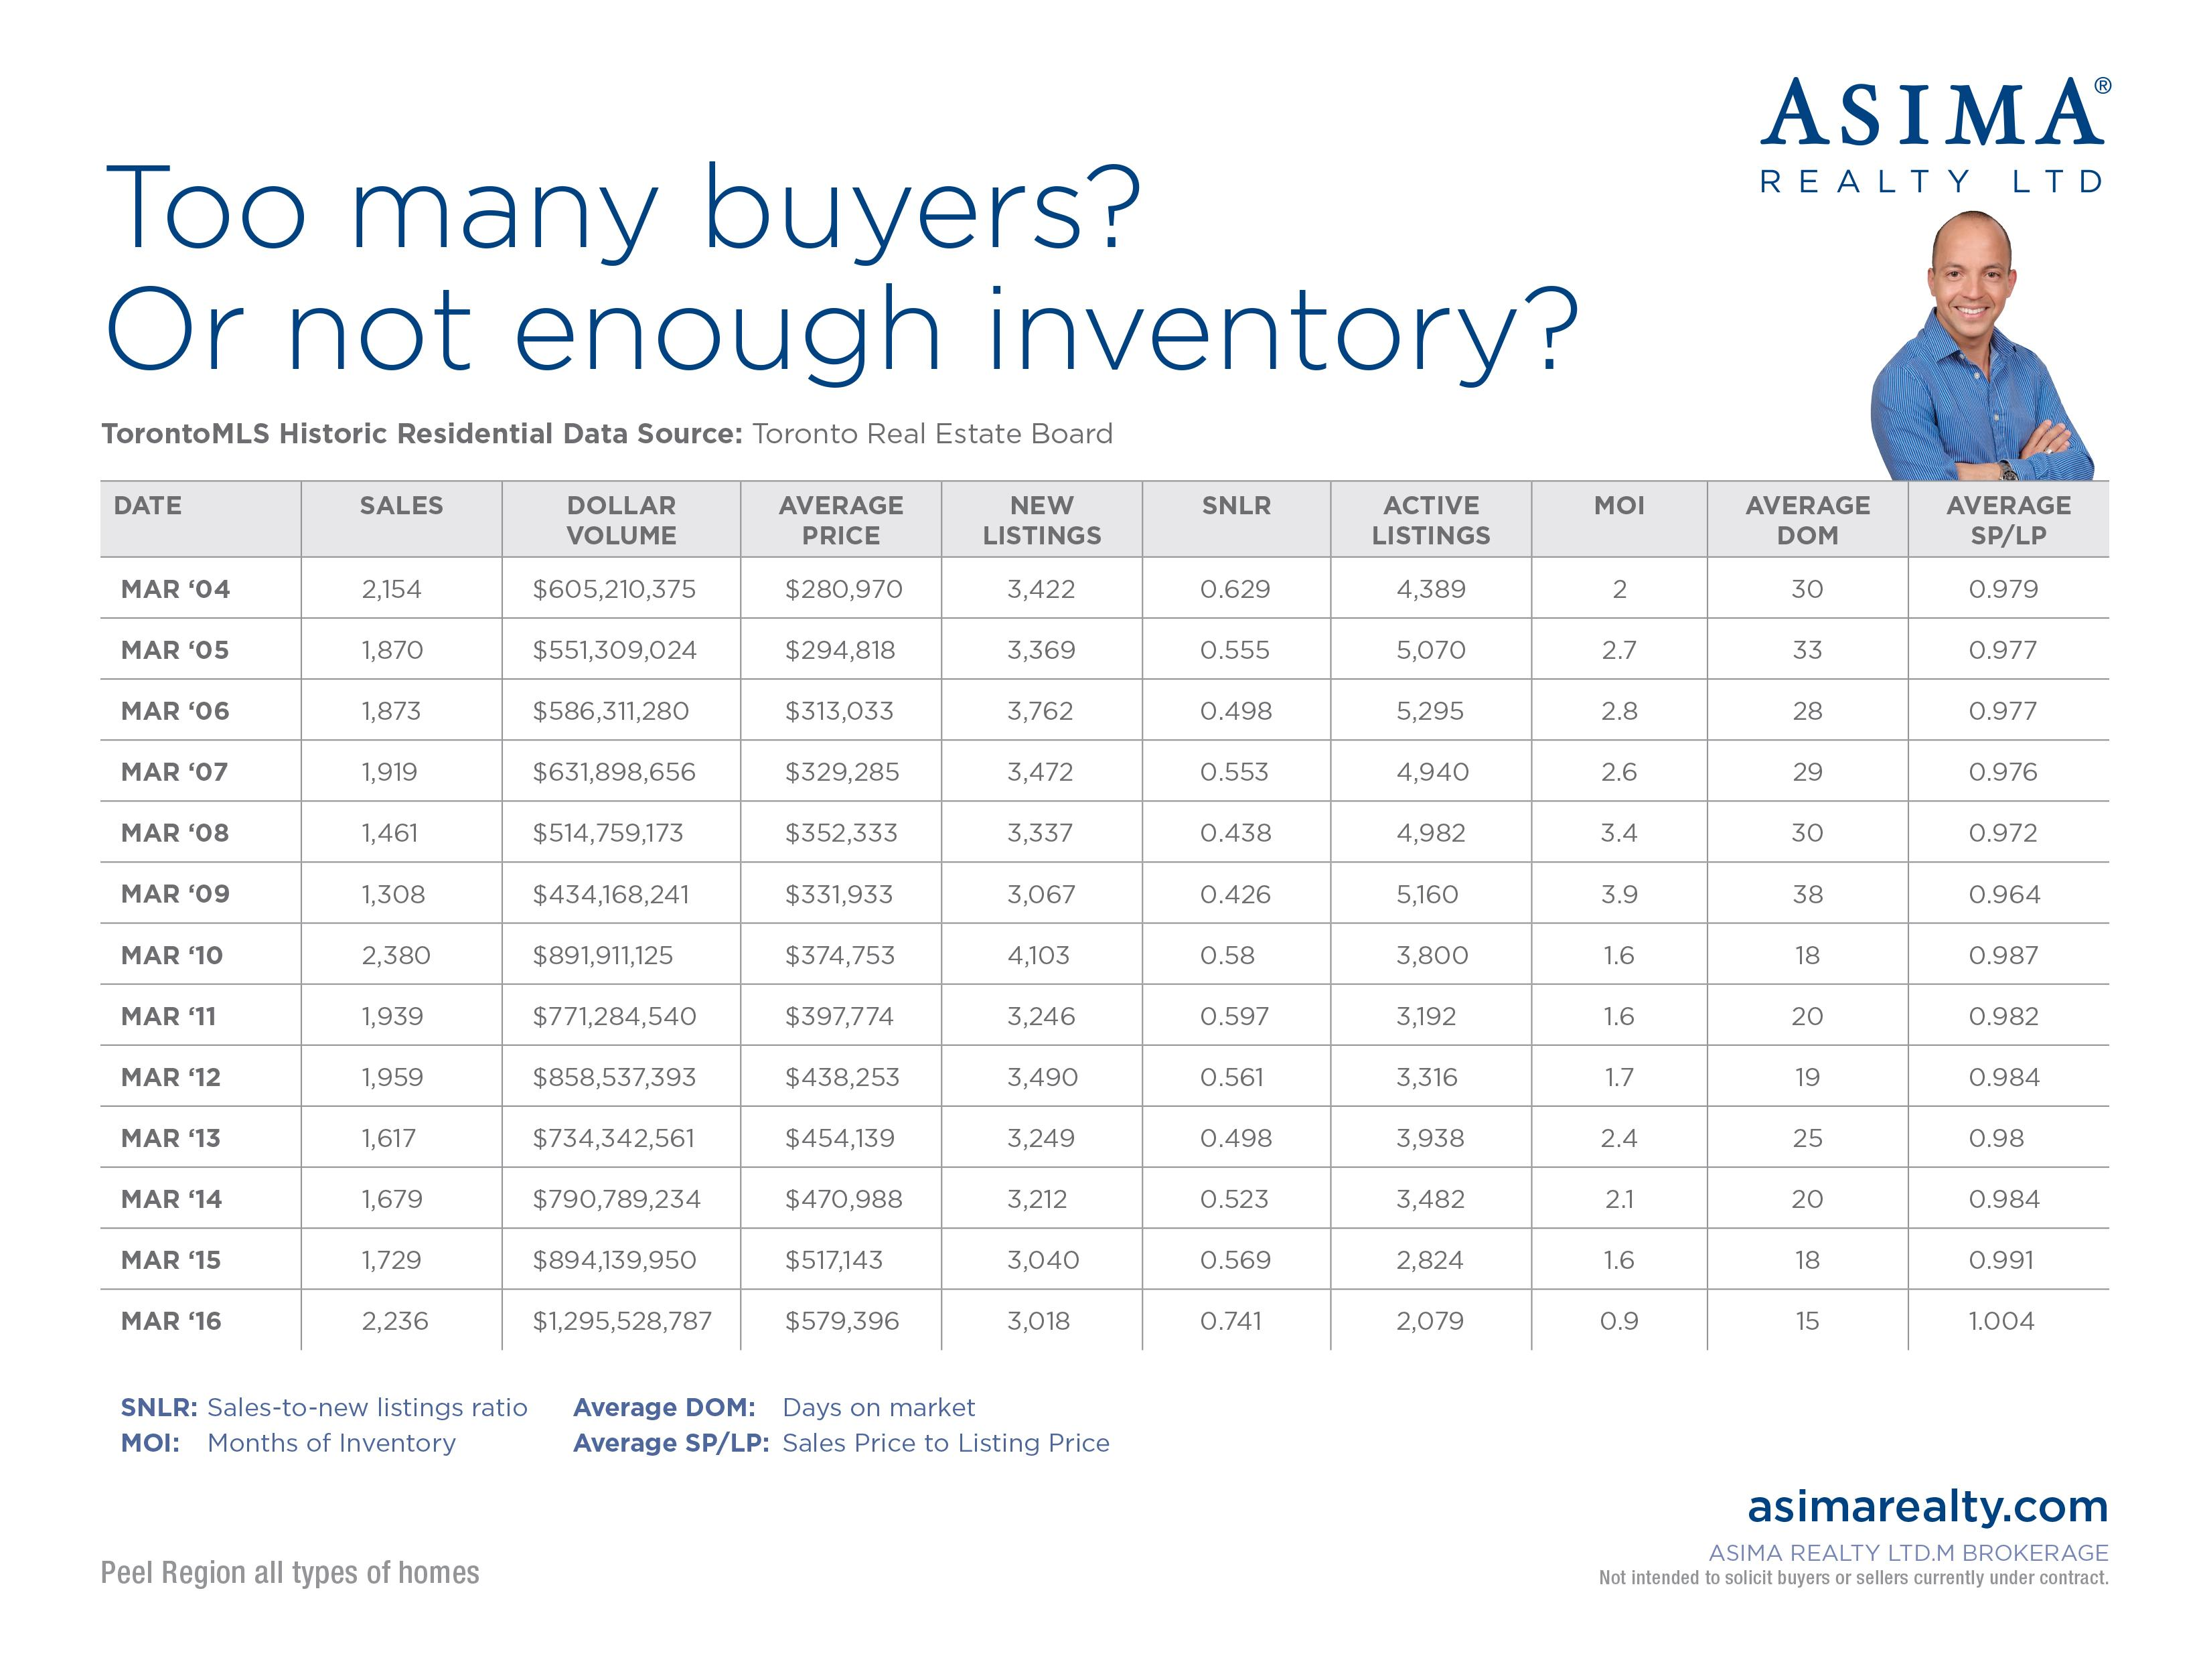 More buyers or a shortage of inventory?